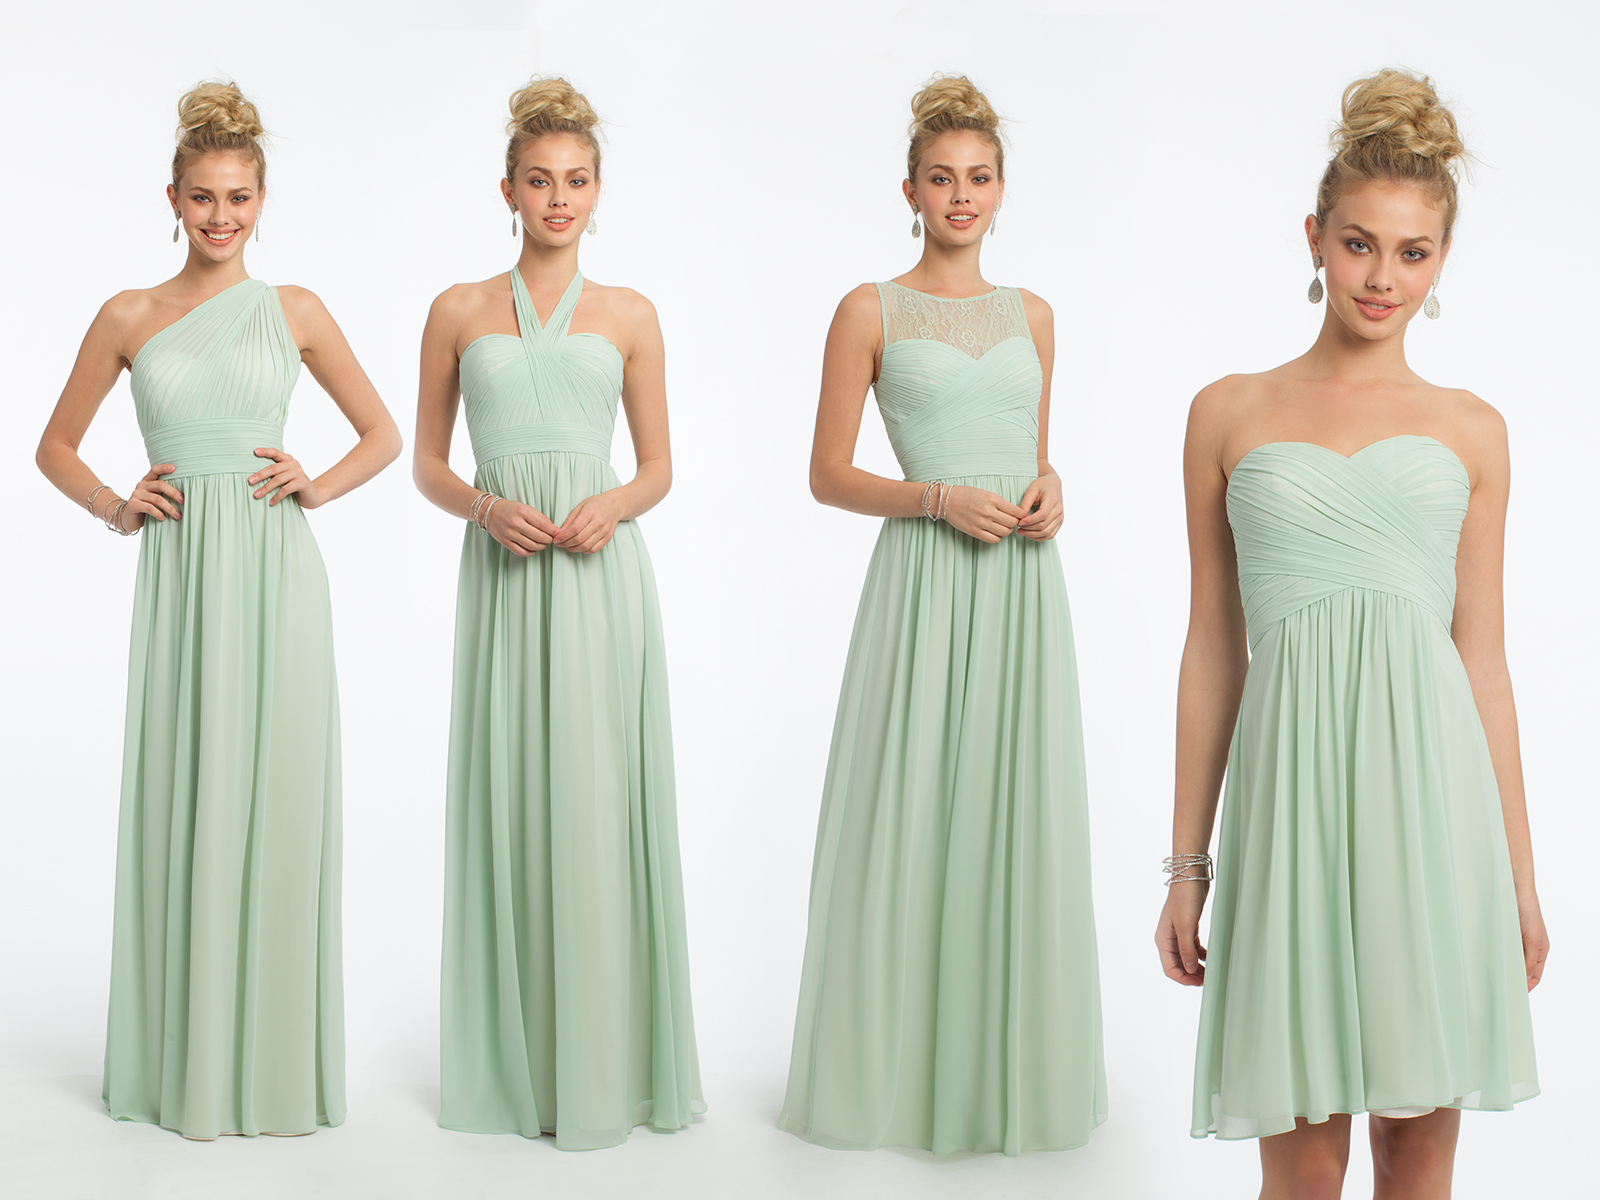 Camille La Vie Sage Bridesmaid Dresses